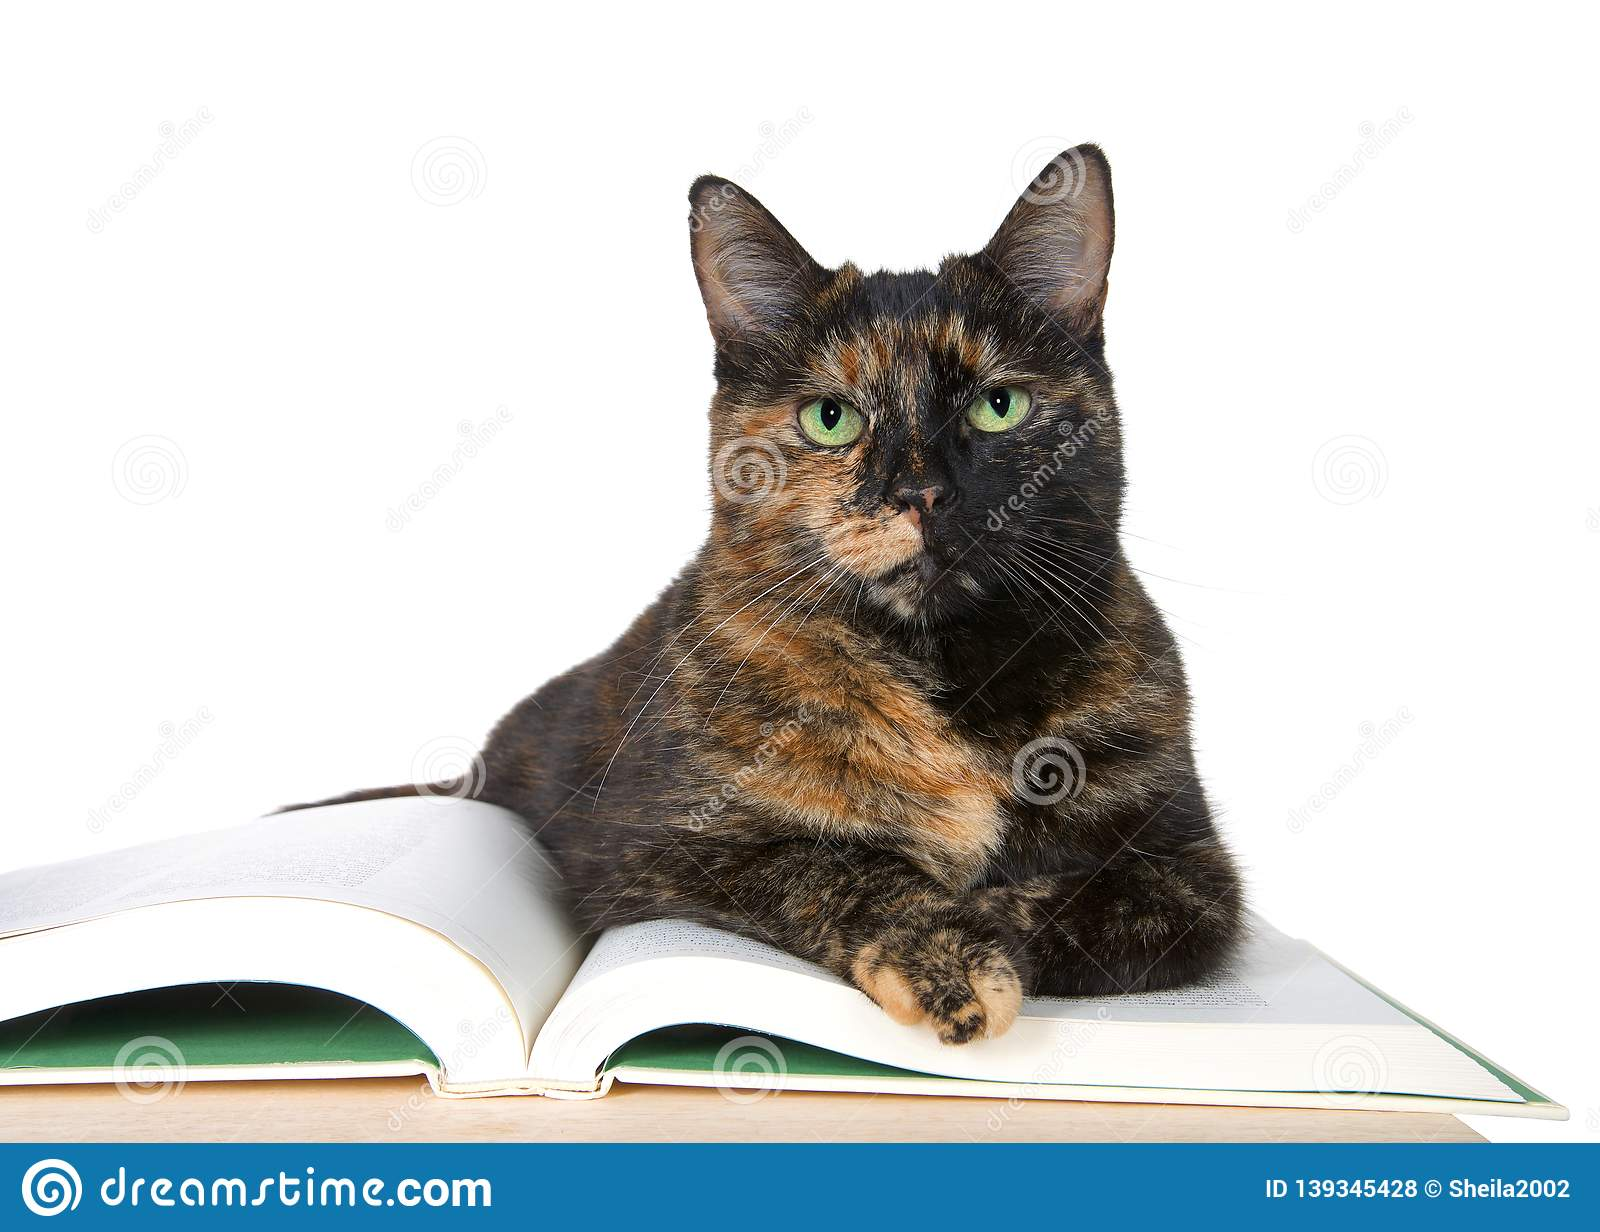 Beautiful Tortoiseshell cat with green eyes, laying on a story book